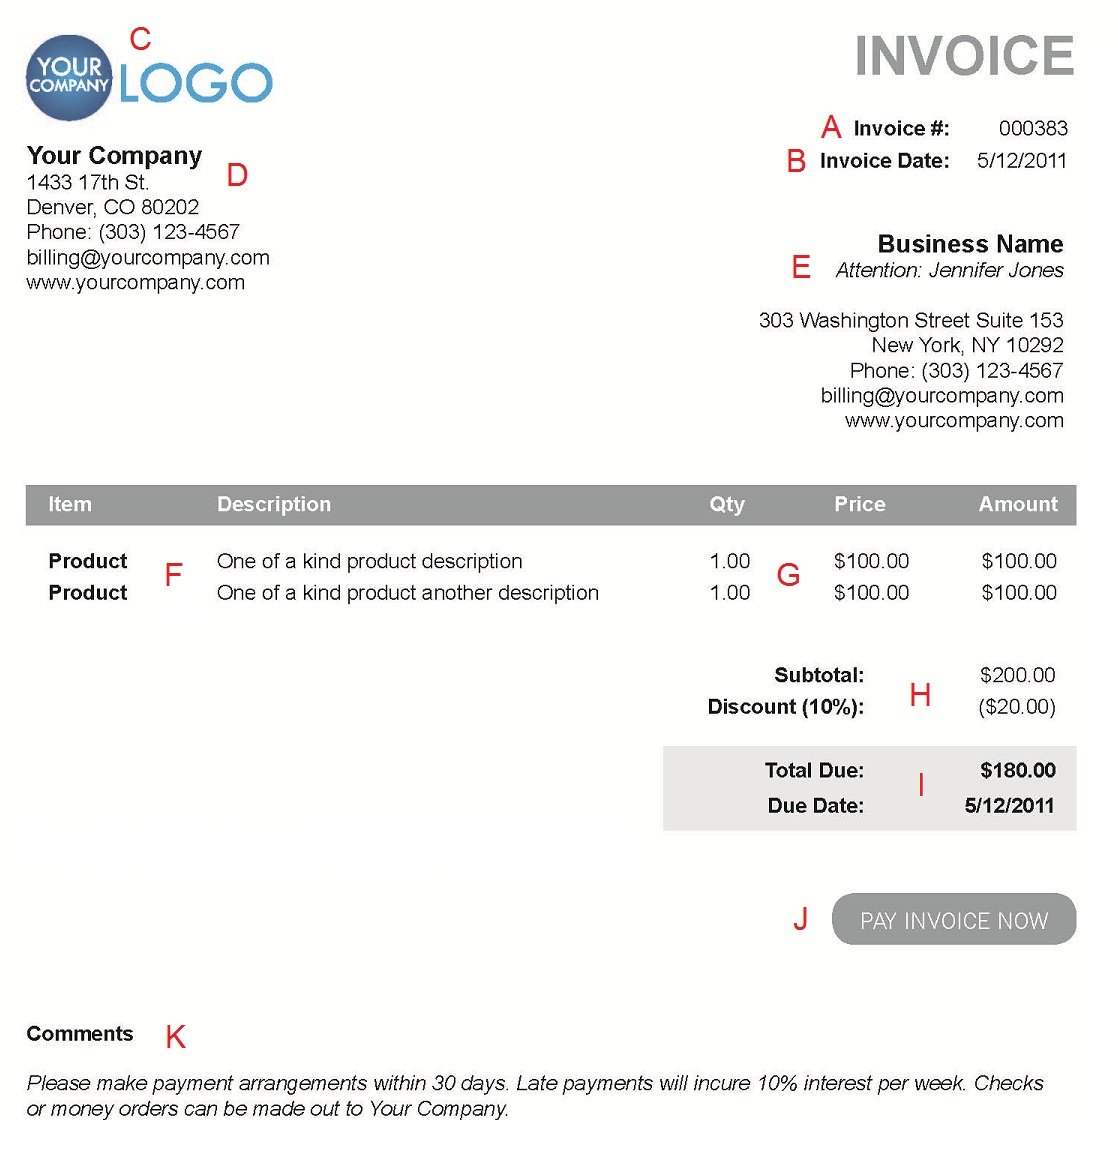 Ultrablogus  Unusual The  Different Sections Of An Electronic Payment Invoice With Fair A  With Delightful Reconcile Invoices Also Payable Invoices In Addition Invoice Templets And Invoice Free Download As Well As Template Invoice Word Additionally Invoice Car From Paysimplecom With Ultrablogus  Fair The  Different Sections Of An Electronic Payment Invoice With Delightful A  And Unusual Reconcile Invoices Also Payable Invoices In Addition Invoice Templets From Paysimplecom